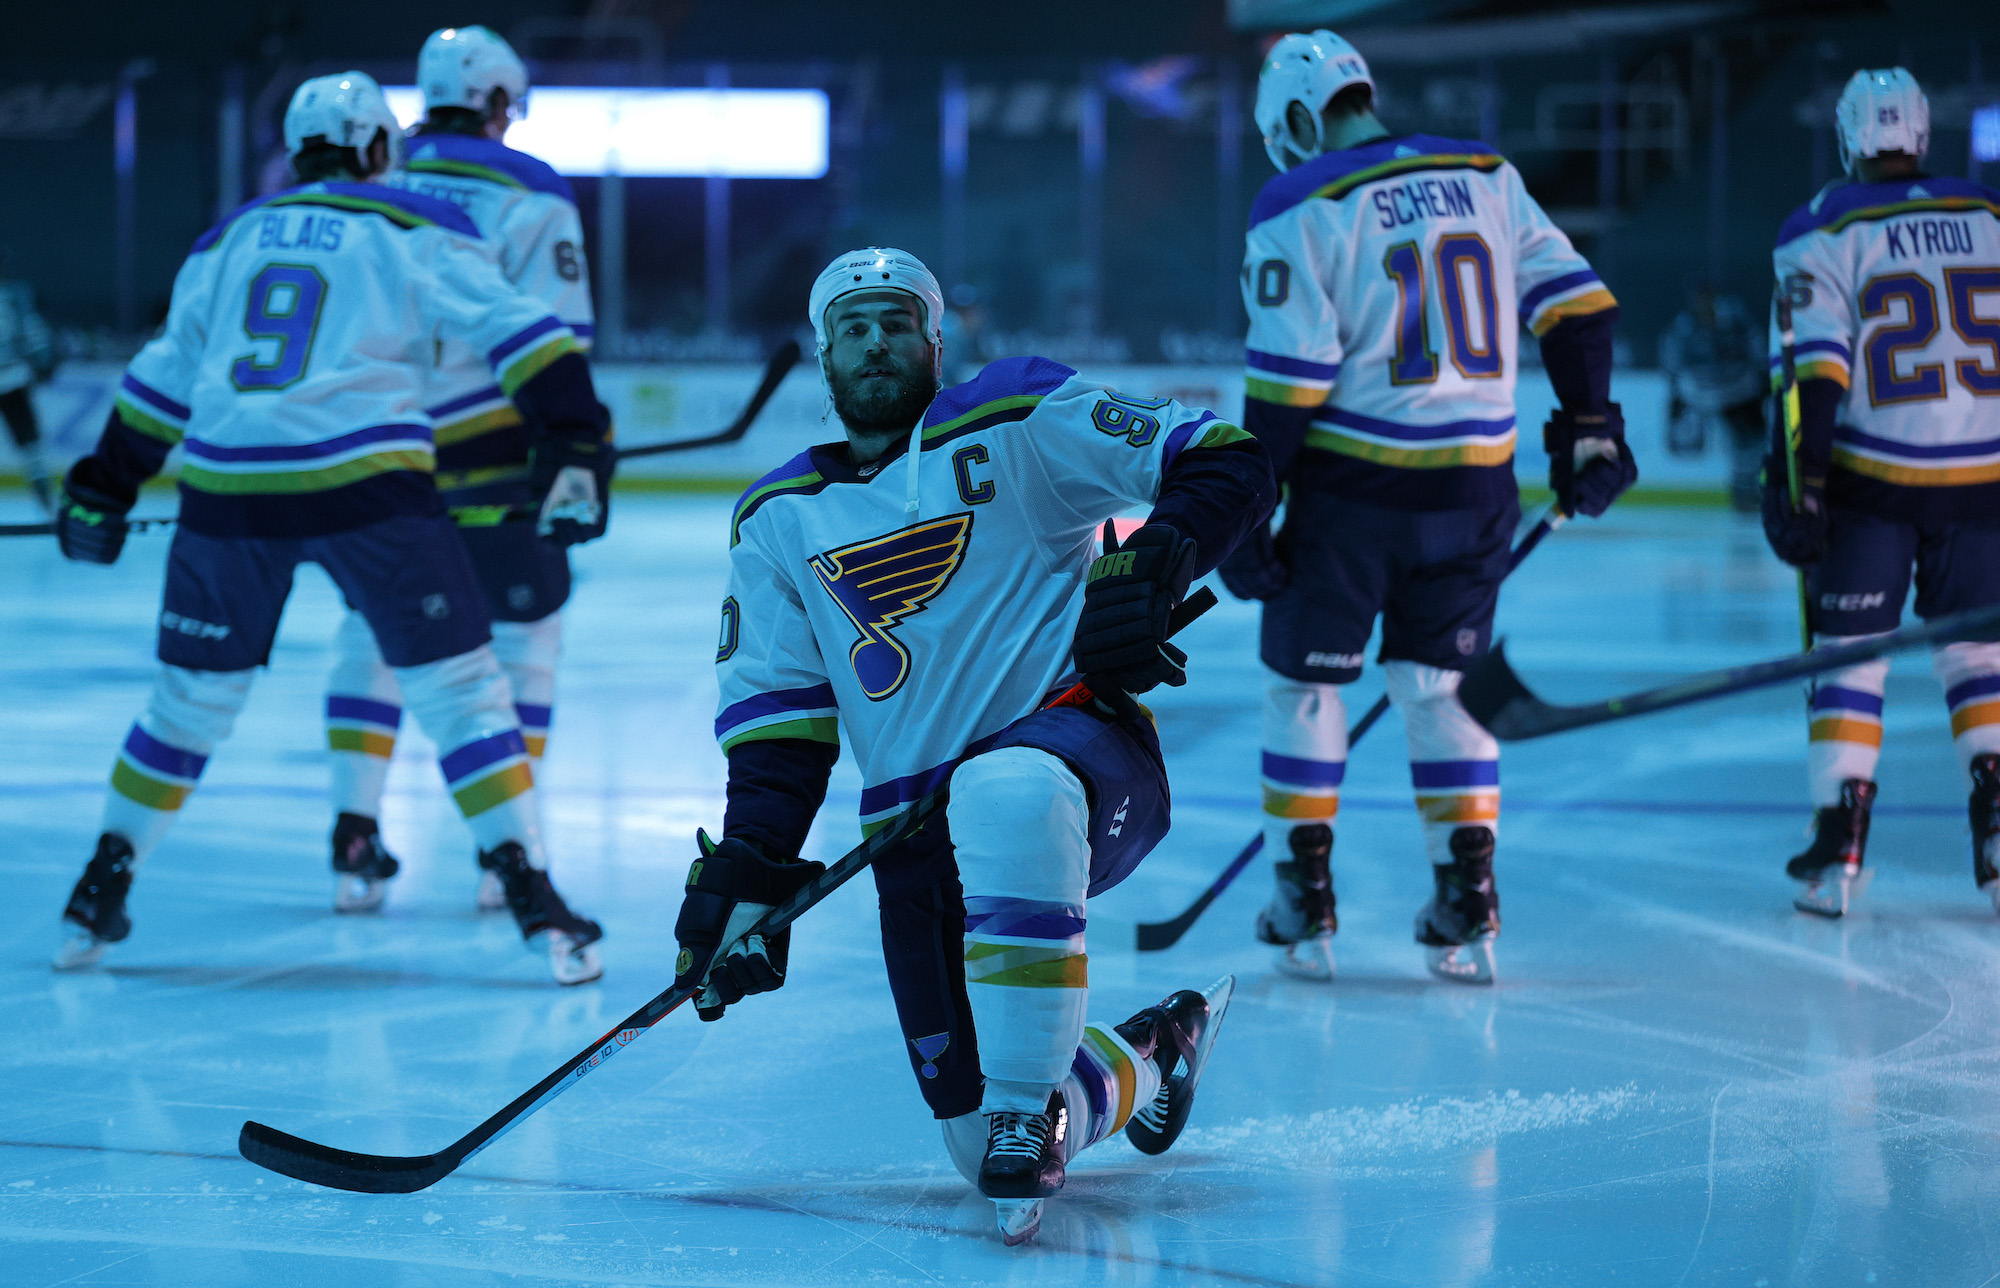 SAN JOSE, CALIFORNIA - FEBRUARY 27: Ryan O'Reilly #90 of the St. Louis Blues warms up before their game against the San Jose Sharks at SAP Center on February 27, 2021 in San Jose, California. (Photo by Ezra Shaw/Getty Images)